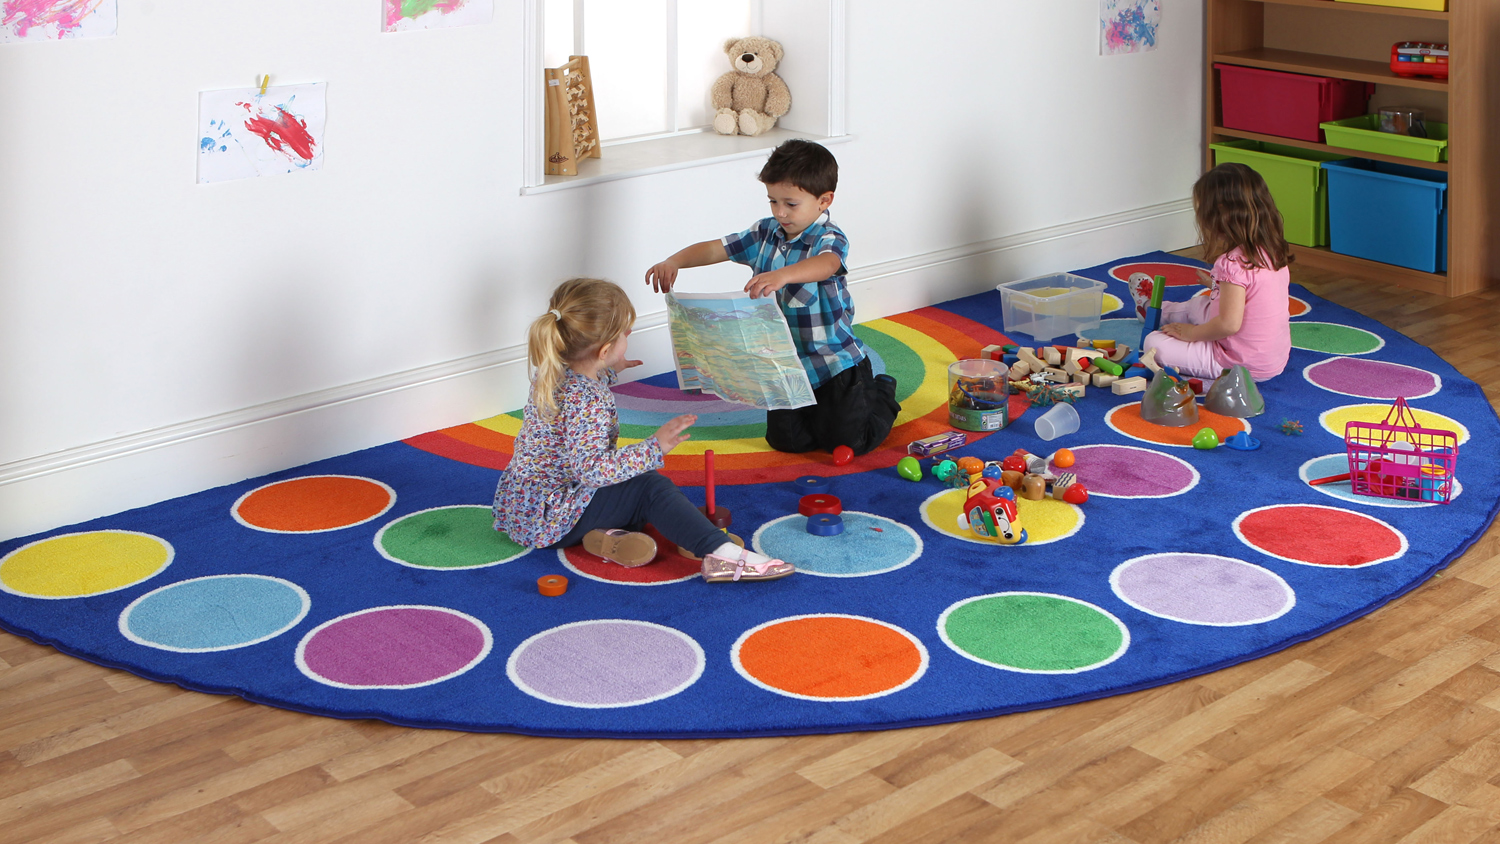 grand tapis arc en ciel de kit for kids par ludesign ludomania. Black Bedroom Furniture Sets. Home Design Ideas